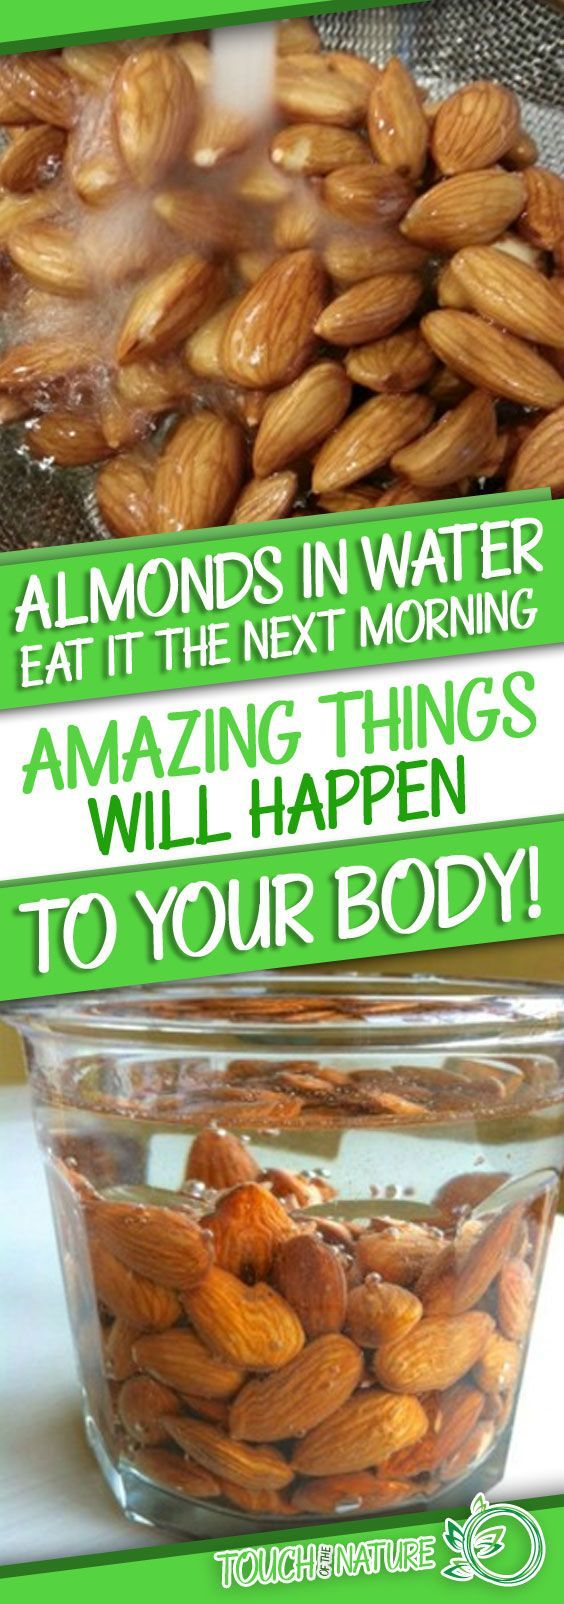 Did you know that dried almonds have health benefits that make fun of your mind? Almonds can make a world of good when it comes to your health, as they are full of necessary vitamins and minerals like vitamin E, zinc, calcium, magnesium, and omega-3 fatty acids. WHY IS IT BETTER TO TAKE ALMONDS IN WATER BEFORE CONSUMING?